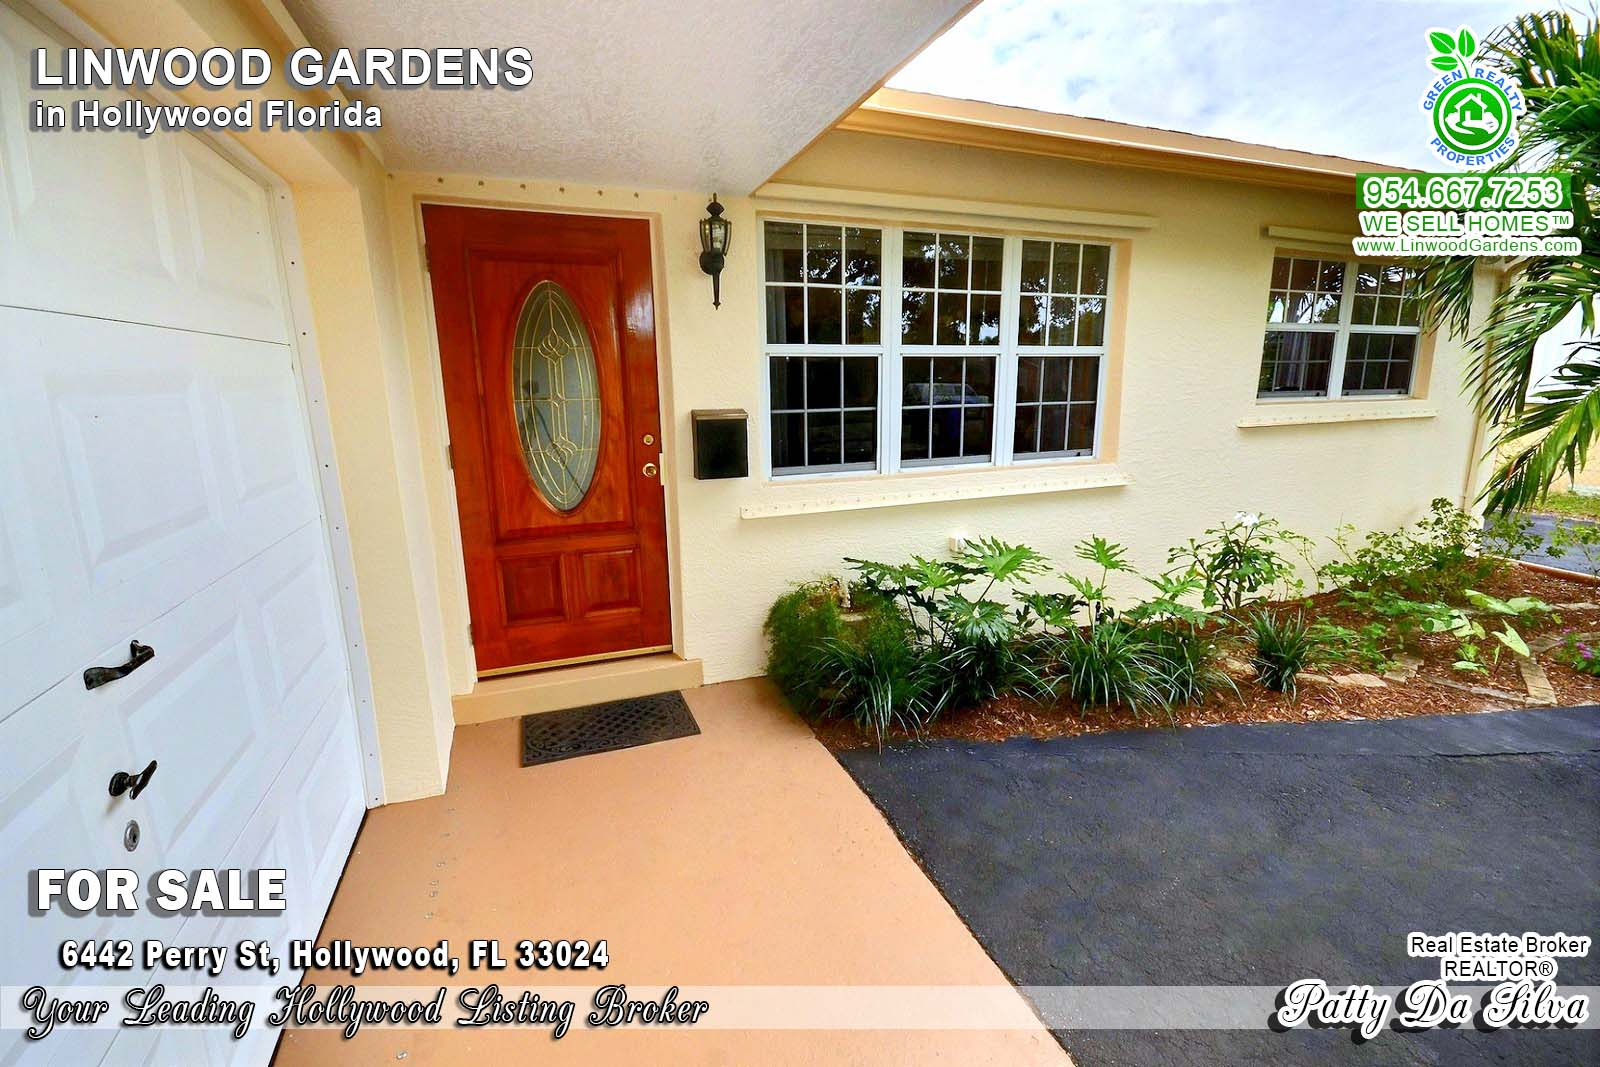 linwood gardens hollywood south florida